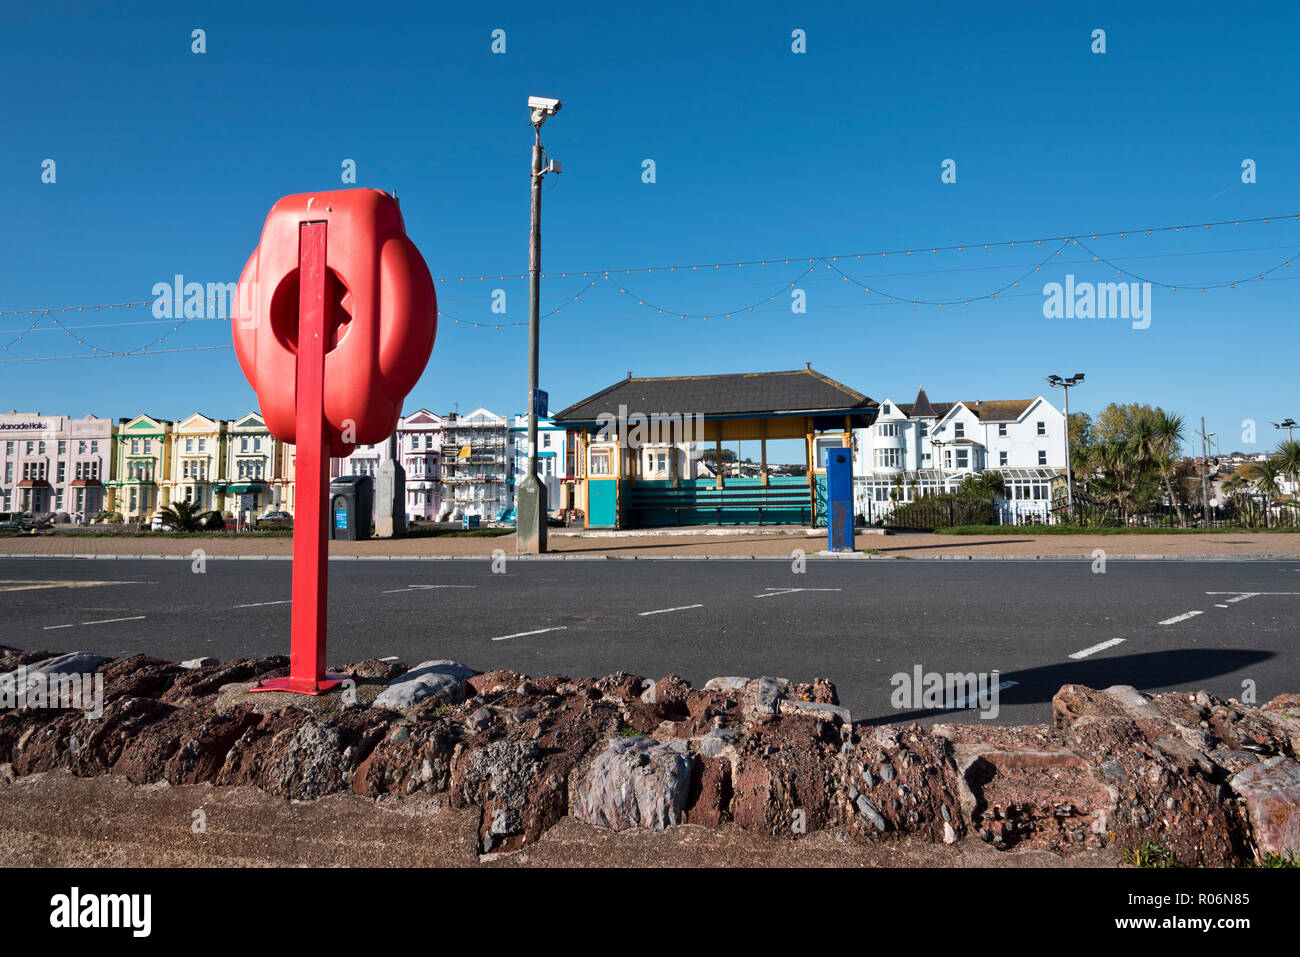 The seafront in the seaside resort of Paignton, Devon. A security camera is mounted on a pole. - Stock Image